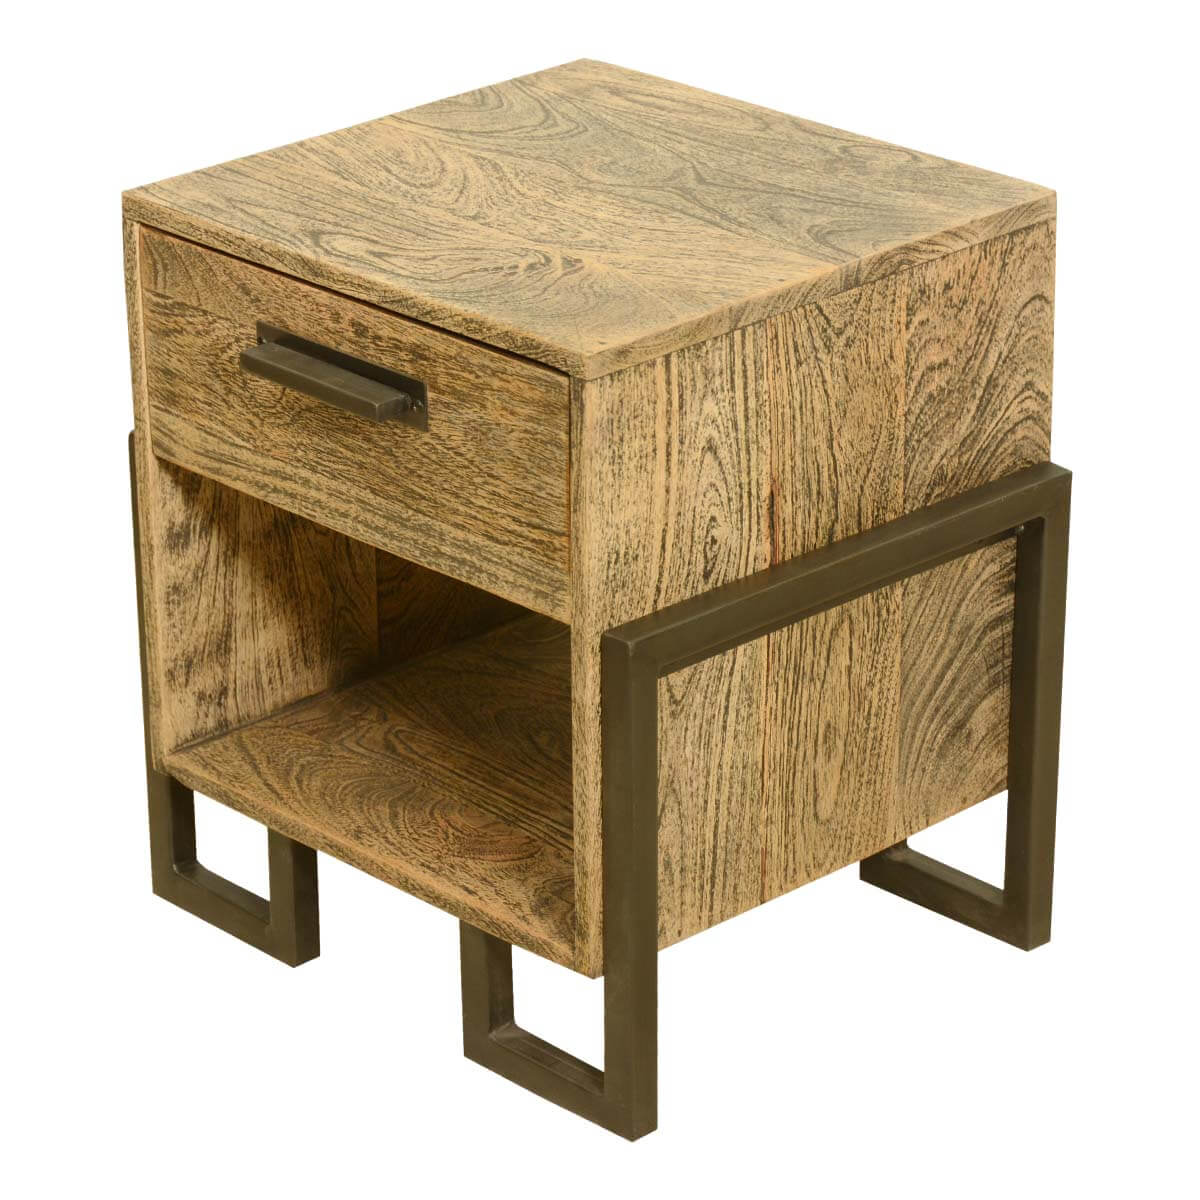 Industrial Look End Tables Industrial Style Rustic Solid Wood And Iron Bedside End